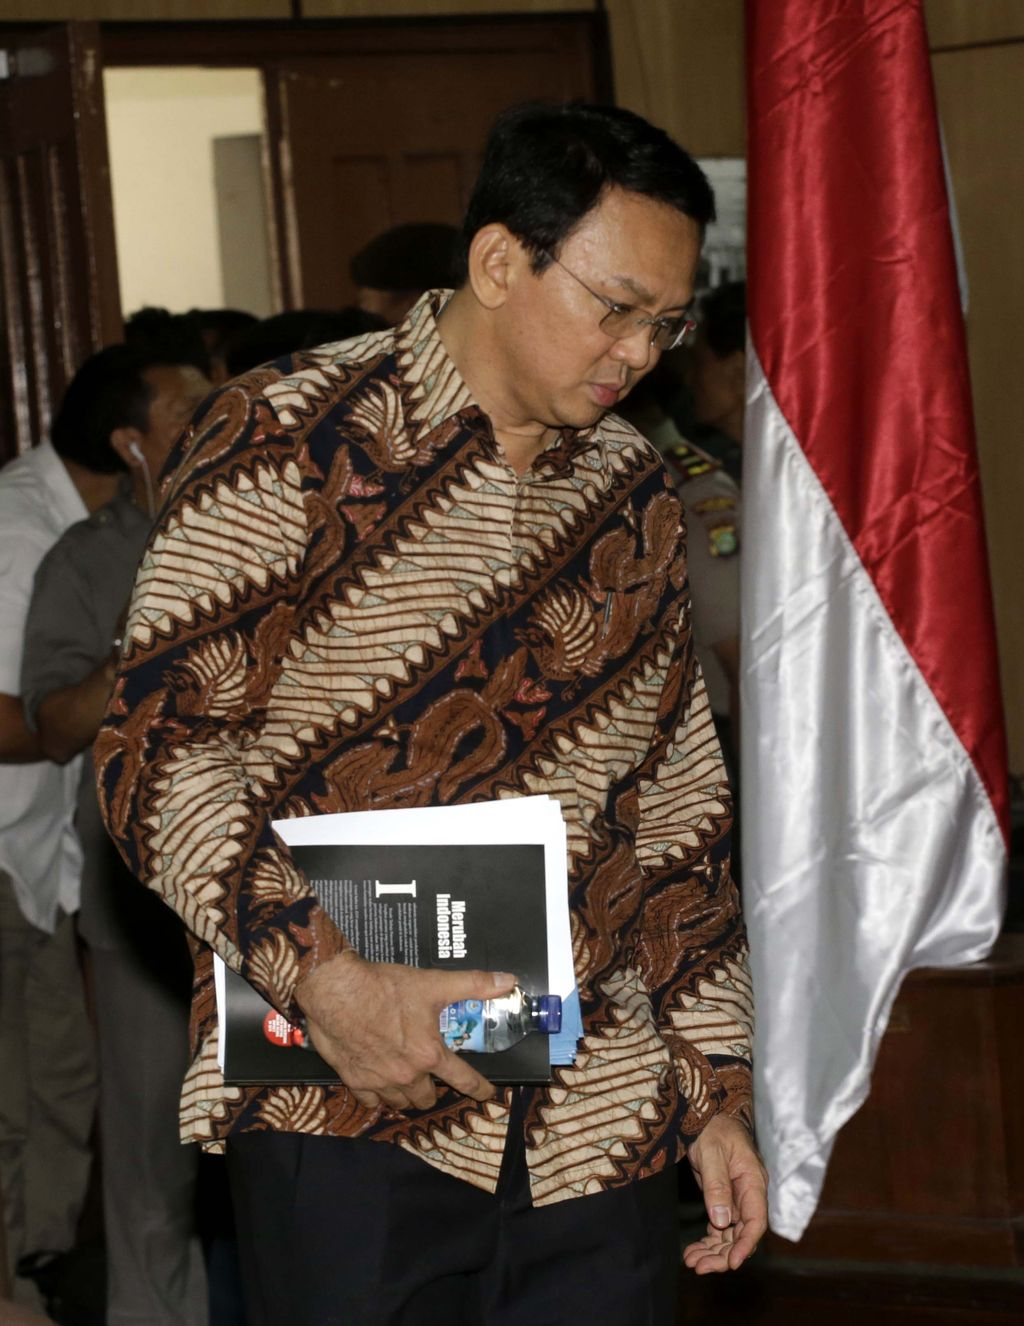 Jakarta Governor Basuki Tjahaja Purnama, popularly known as